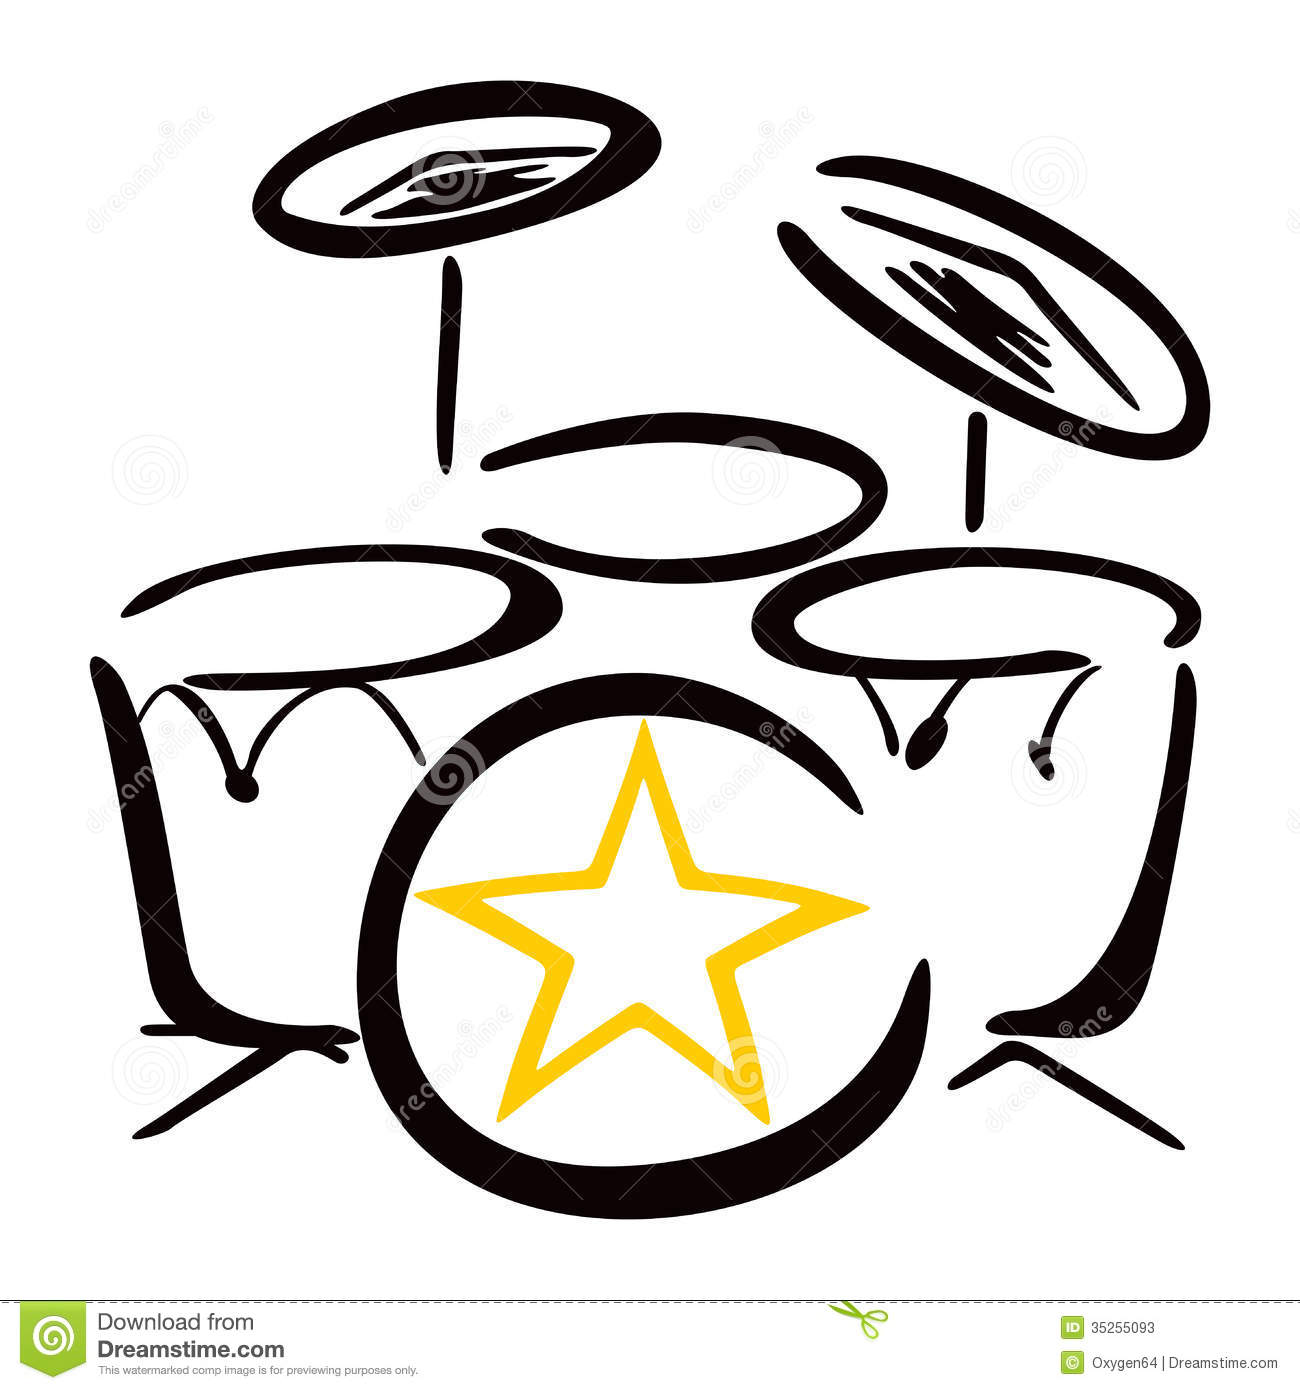 drum-set-silhouette-set-drummer-drum-kit-drawing-white-background ... White Drum Set Silhouette